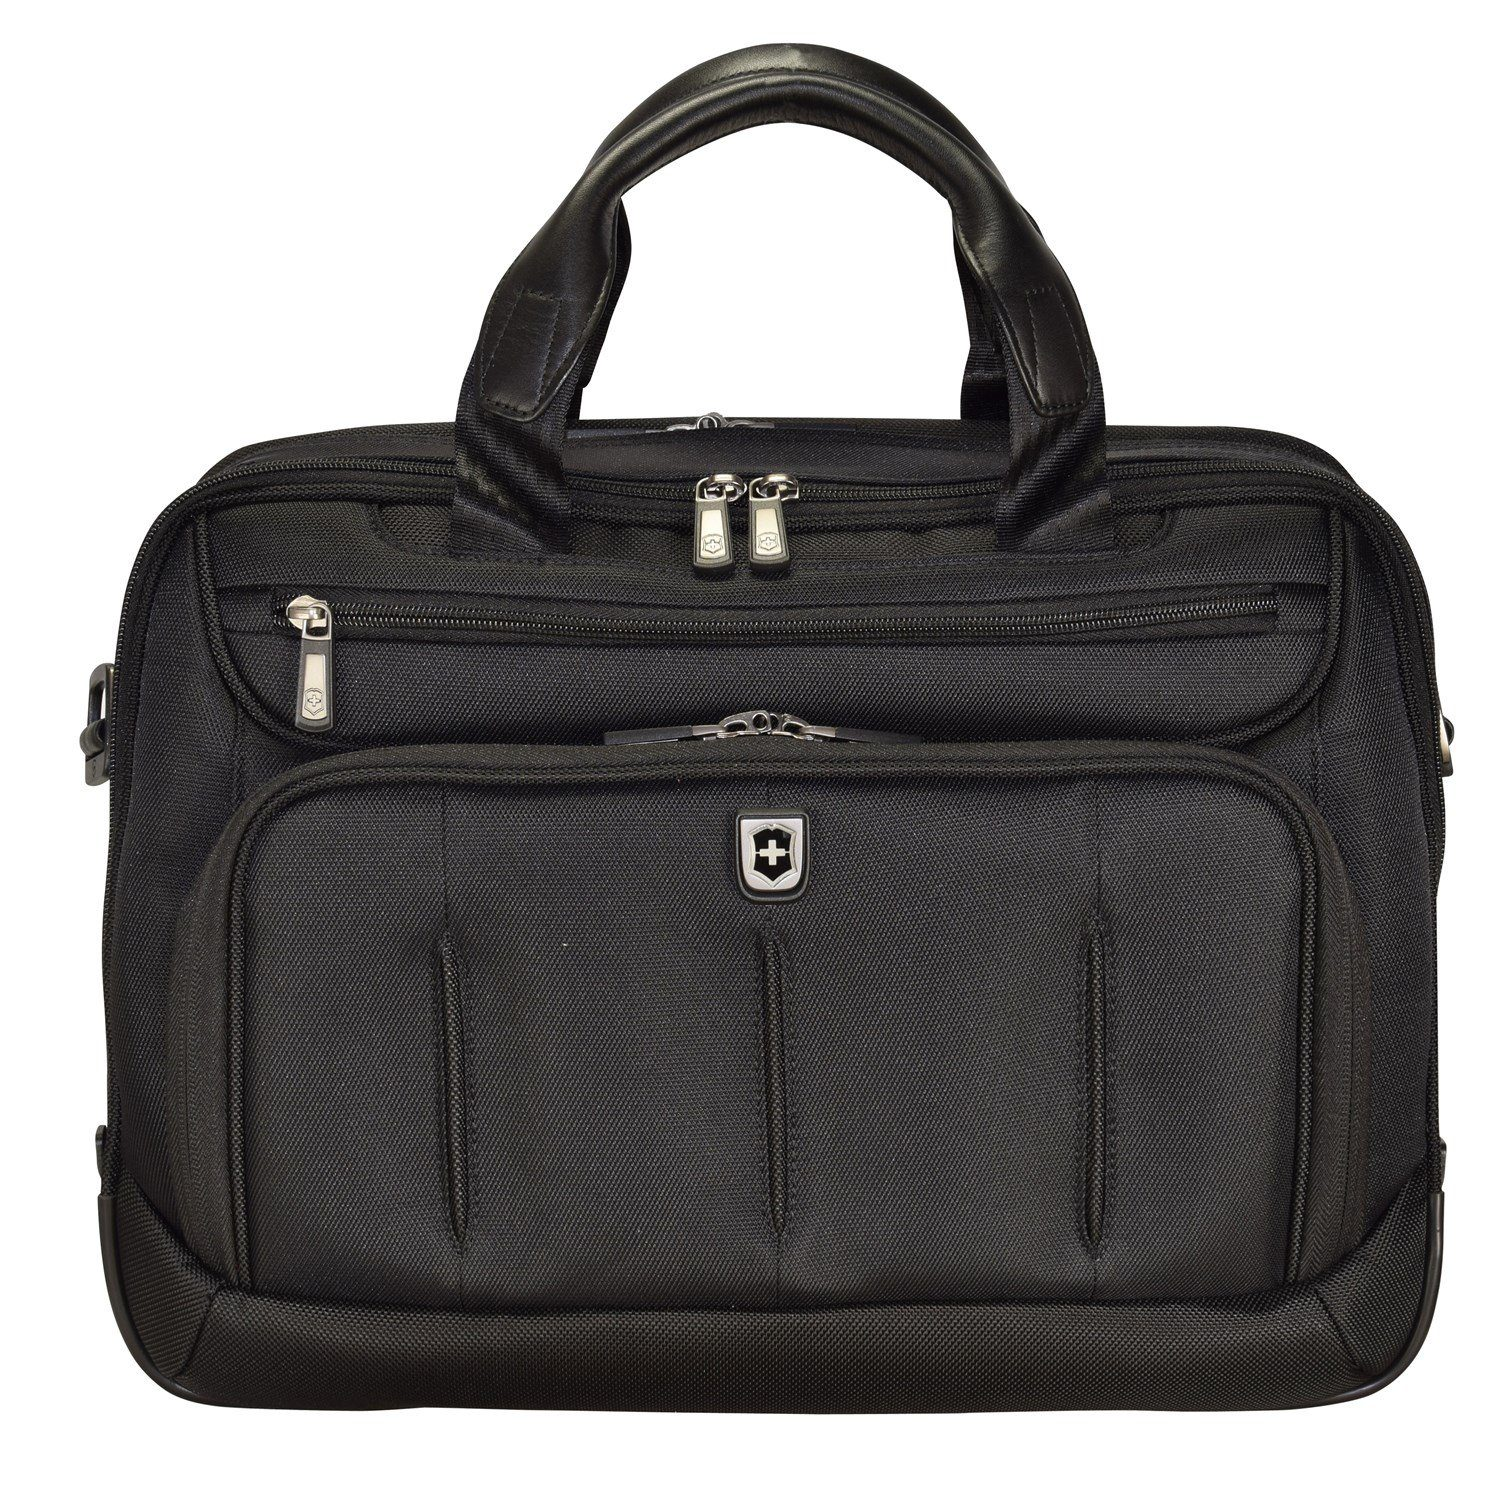 Victorinox Vx One Aktentasche 42 cm Laptopfach